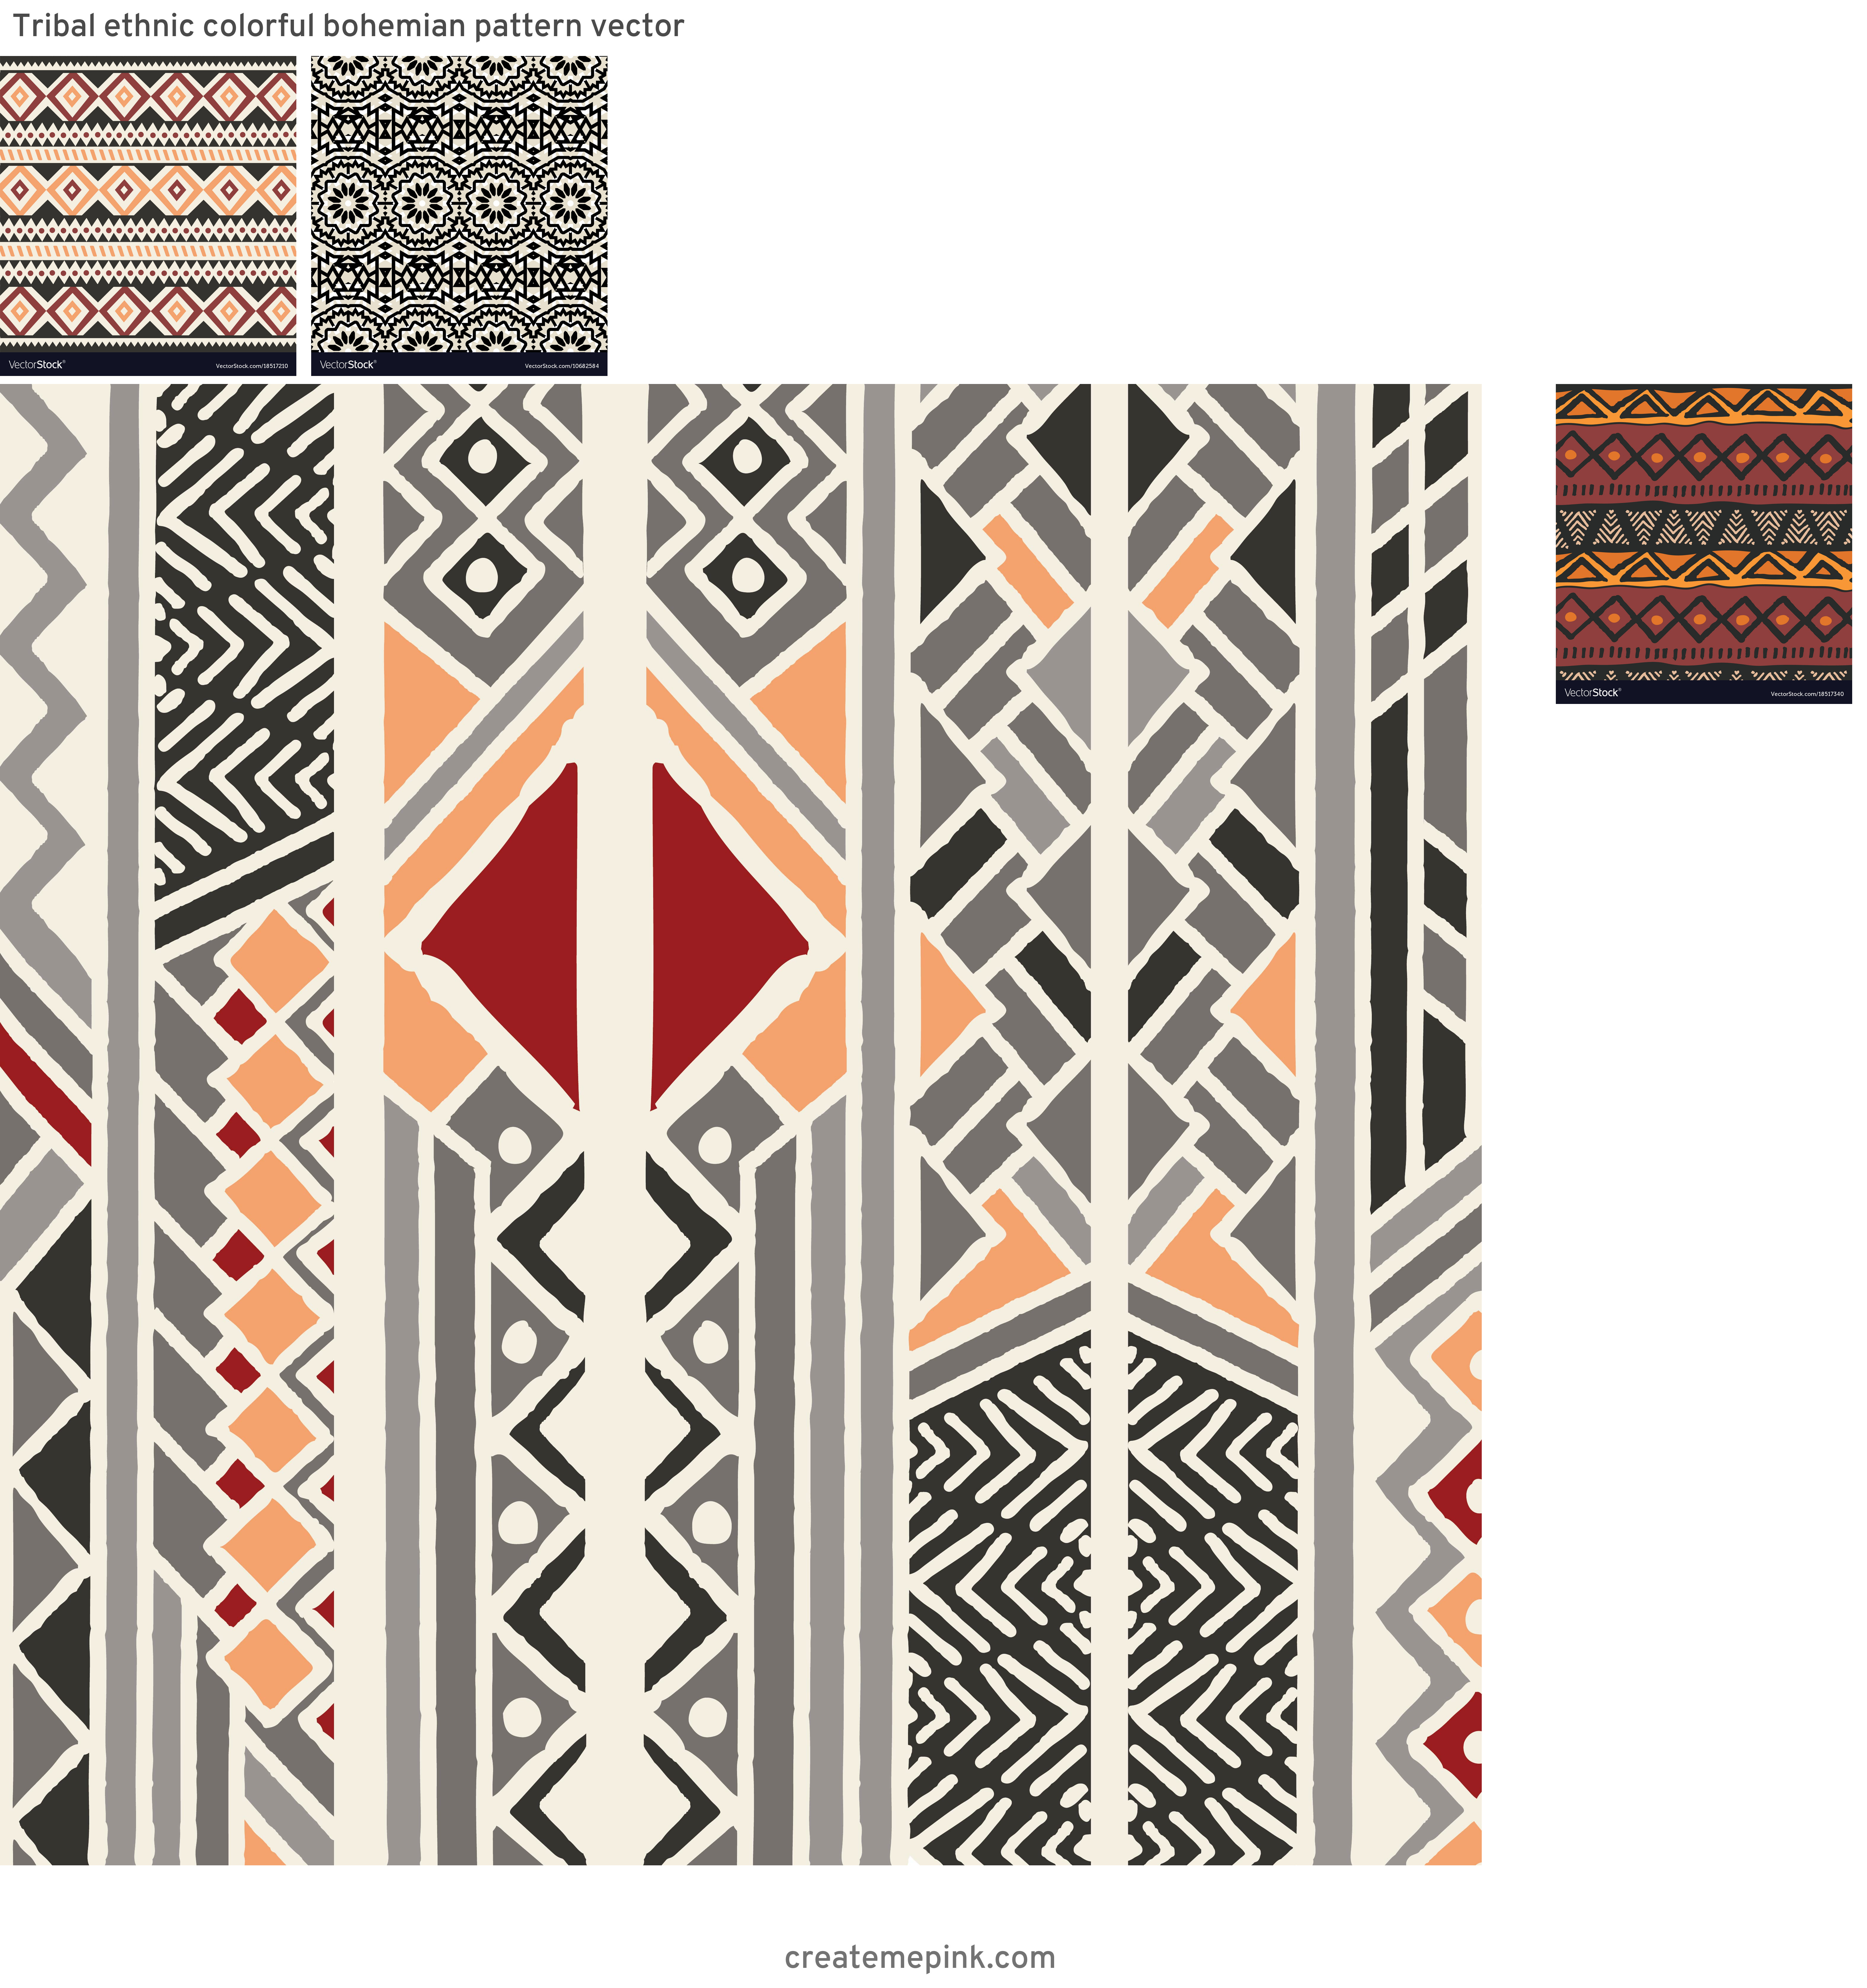 Bohemian Pattern Vector: Tribal Ethnic Colorful Bohemian Pattern Vector